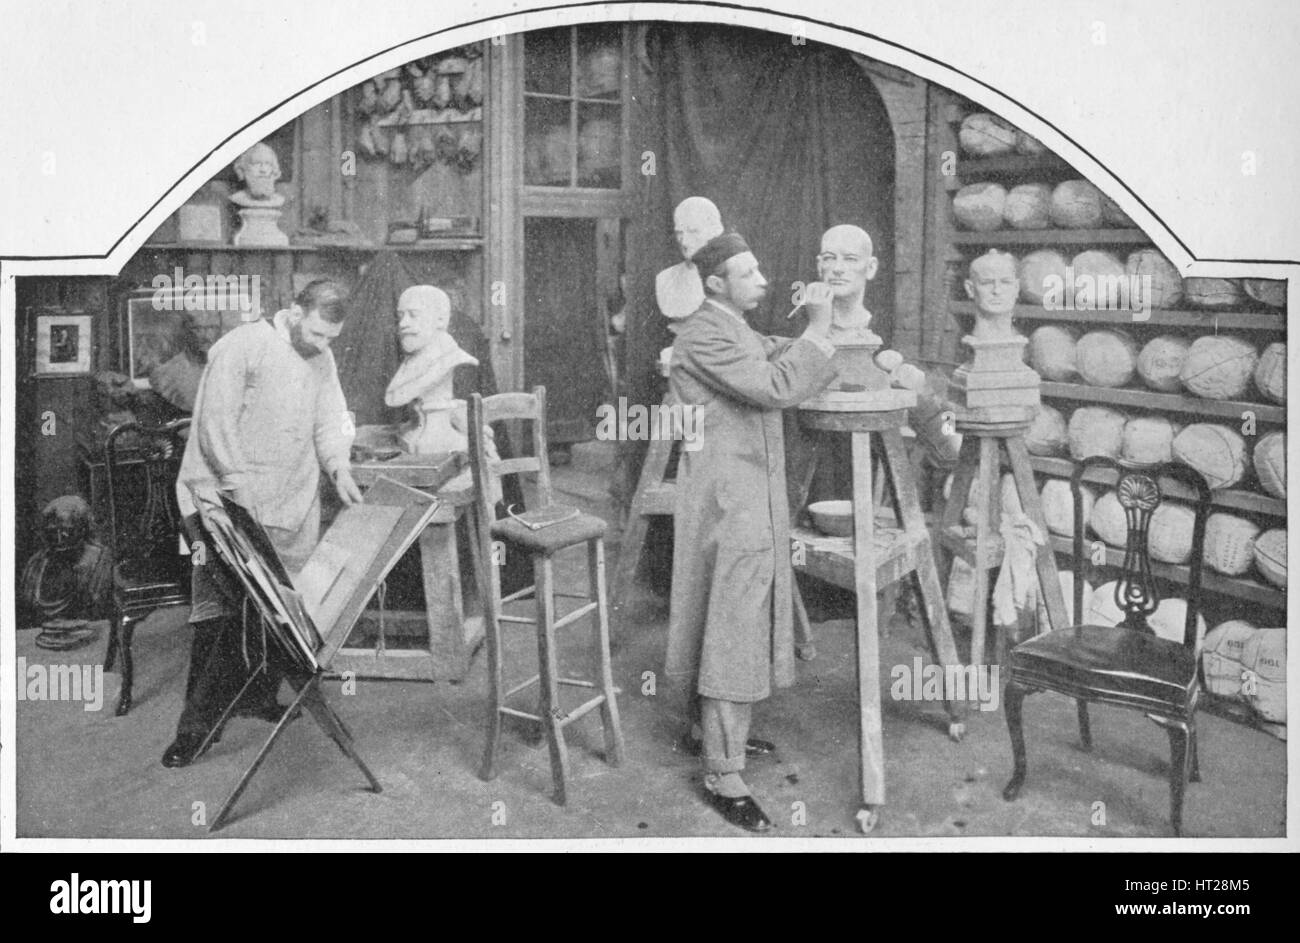 Preparing models at Madame Tussaud's, London, c1903 (1903). Artist: Unknown. - Stock Image